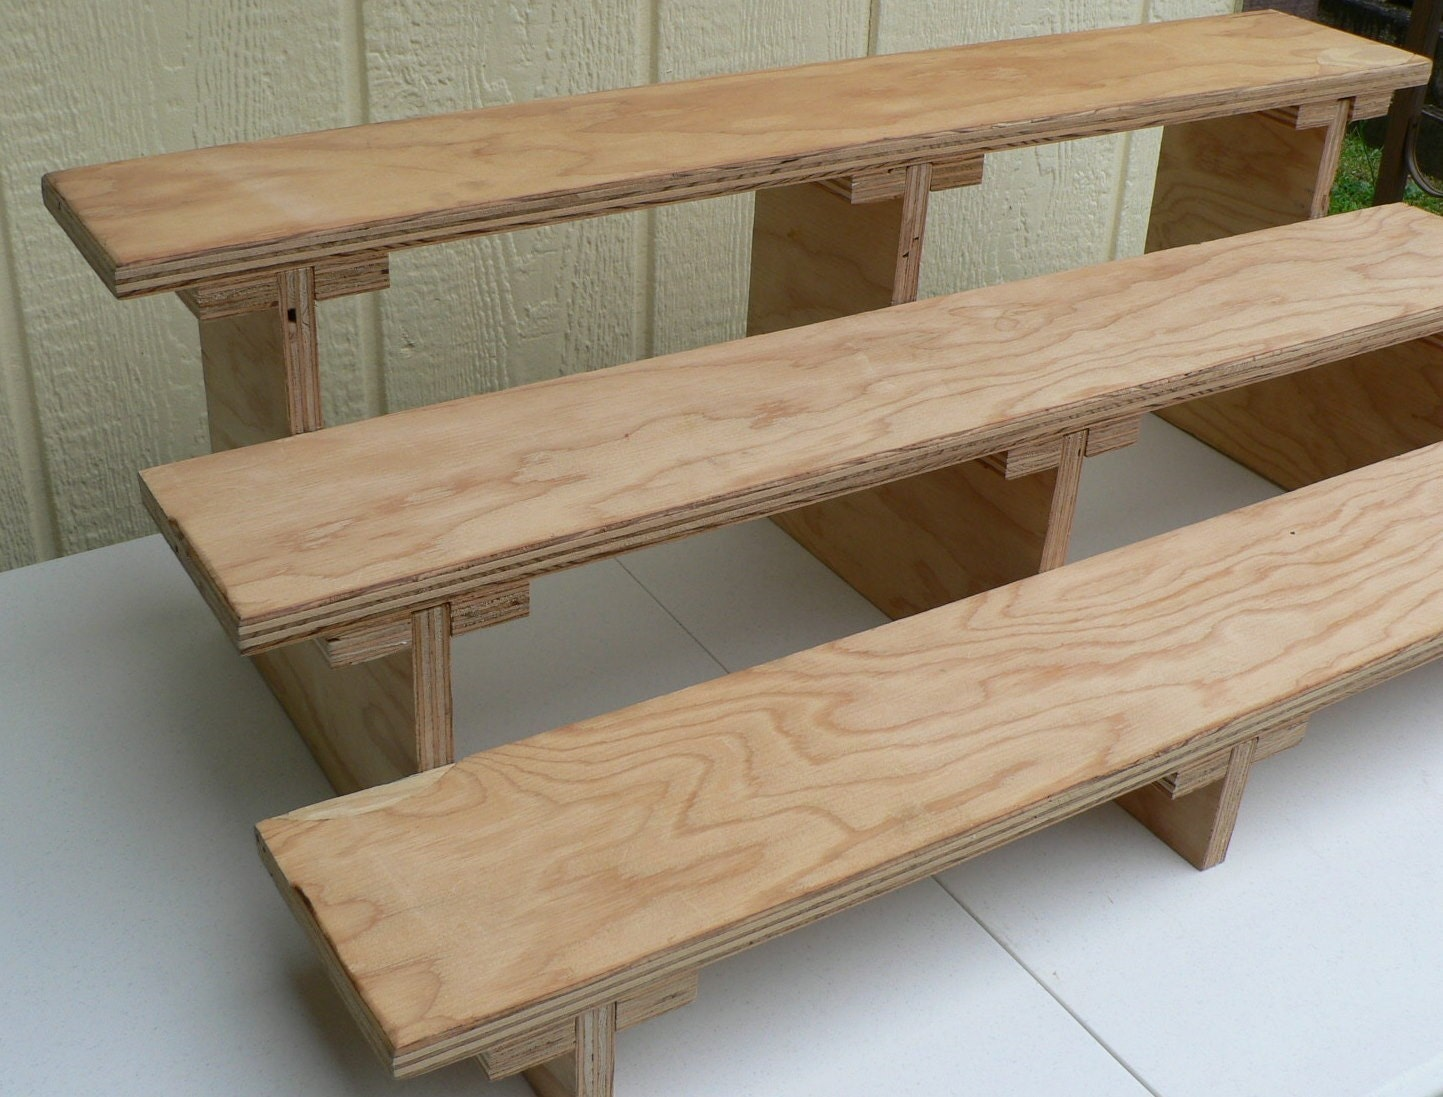 Shoe lution Shoe horning A Storage Situation Etsy Journal